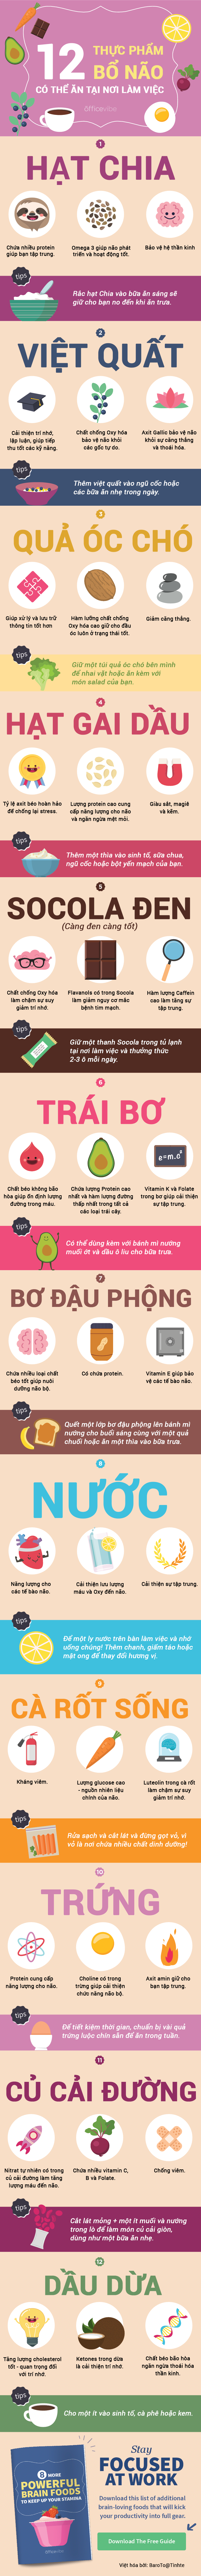 infographic-brain-foods.png